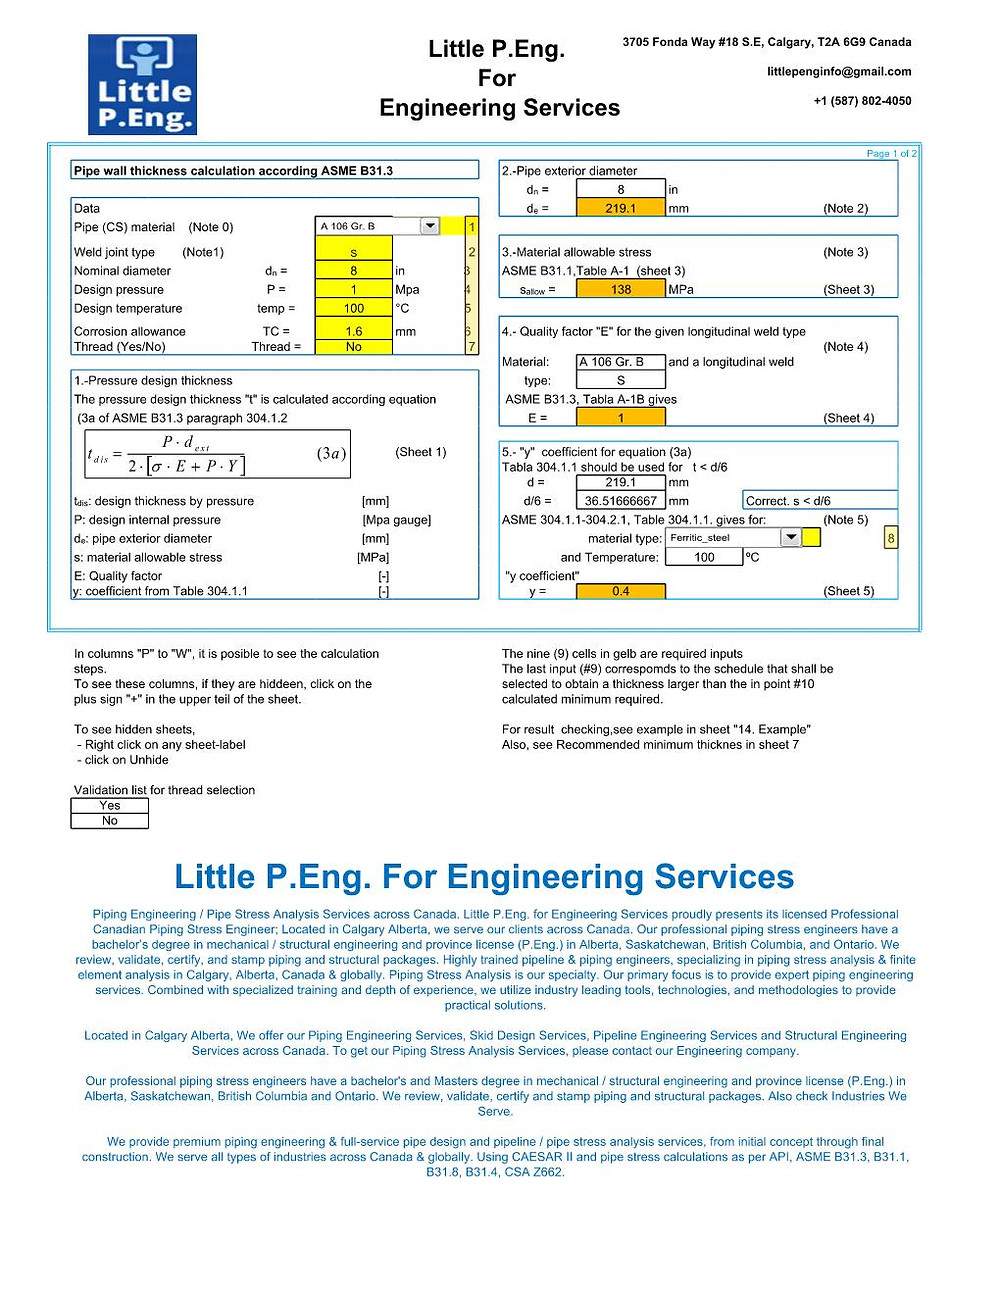 Wall Thickness Calculation As Per ASME B31.3 by Little P.Eng. For Engineering Services for Piping Engineering / Pipe Stress Analysis Services across Canada. Little P.Eng. for Engineering Services proudly presents its licensed Professional Canadian Piping Stress Engineer; Located in Calgary Alberta, we serve our clients across Canada. Our professional piping stress engineers have a bachelor's degree in mechanical / structural engineering and province license (P.Eng.) in Alberta, Saskatchewan, British Columbia, and Ontario. We review, validate, certify, and stamp piping and structural packages. Highly trained pipeline & piping engineers, specializing in piping stress analysis & finite element analysis in Calgary, Alberta, Canada & globally. Piping Stress Analysis is our specialty. Our primary focus is to provide expert piping engineering services. Combined with specialized training and depth of experience, we utilize industry leading tools, technologies, and methodologies to provide practical solutions.   Located in Calgary Alberta, We offer our Piping Engineering Services, Skid Design Services, Pipeline Engineering Services and Structural Engineering Services across Canada. To get our Piping Stress Analysis Services, please contact our Engineering company.  Our professional piping stress engineers have a bachelor's and Masters degree in mechanical / structural engineering and province license (P.Eng.) in Alberta, Saskatchewan, British Columbia and Ontario. We review, validate, certify and stamp piping and structural packages. Also check Industries We Serve.  We provide premium piping engineering & full-service pipe design and pipeline / pipe stress analysis services, from initial concept through final construction. We serve all types of industries across Canada & globally. Using CAESAR II and pipe stress calculations as per API, ASME B31.3, B31.1, B31.8, B31.4, CSA Z662.